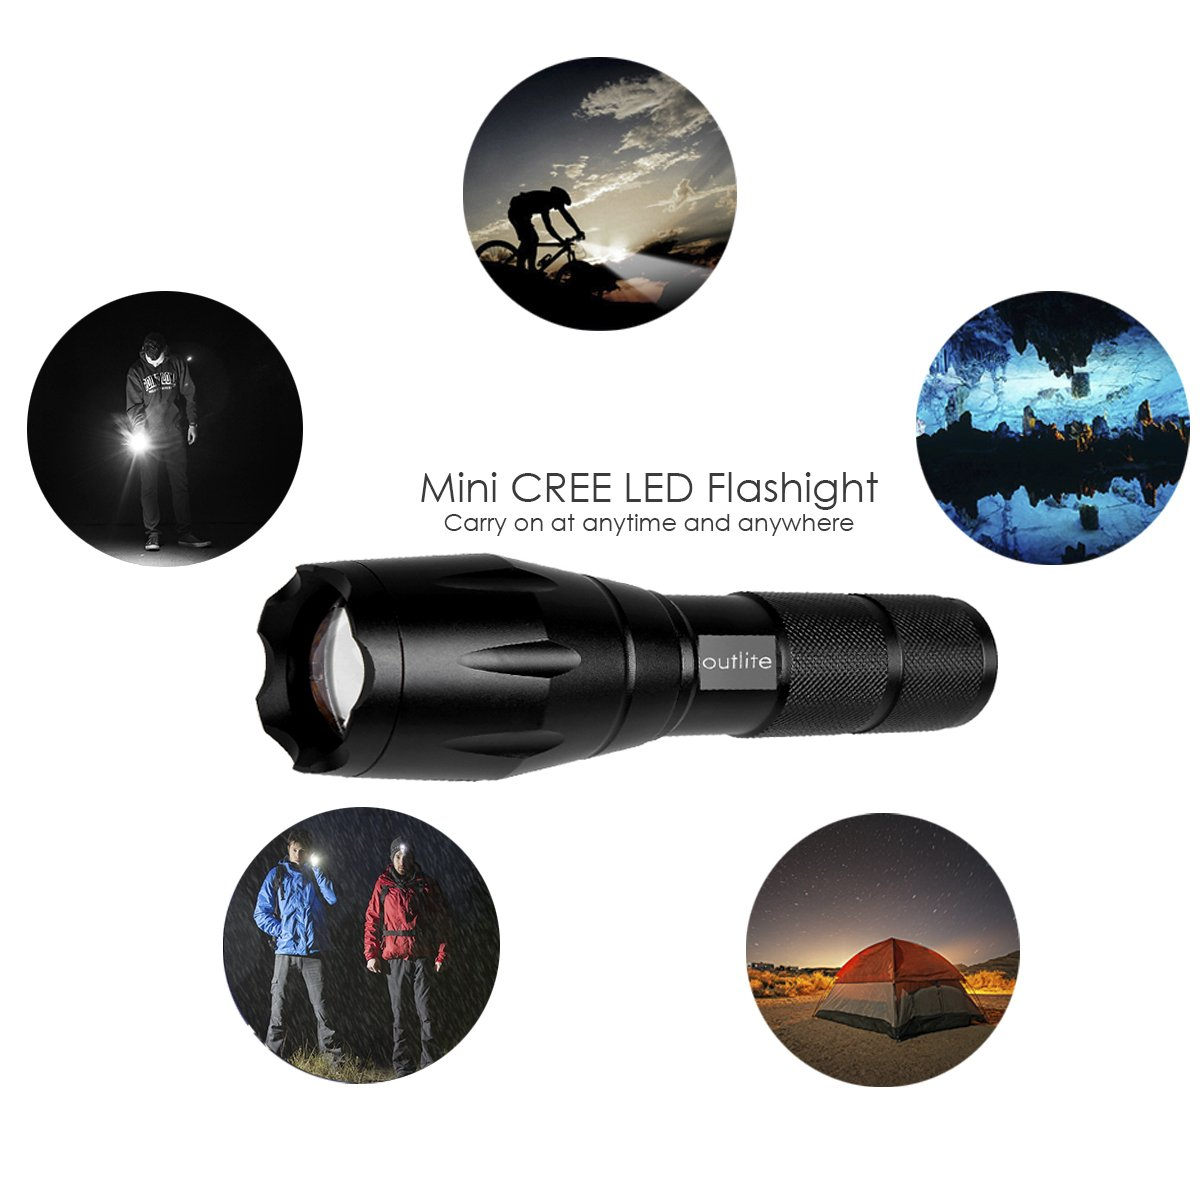 Outlite A100 Portable Ultra Bright Handheld LED Flashlight with Adjustable Focus and 5 Light Modes, Outdoor Water Resistant Torch, Powered Tactical Flashlight for Camping Hiking etc by outlite (Image #8)